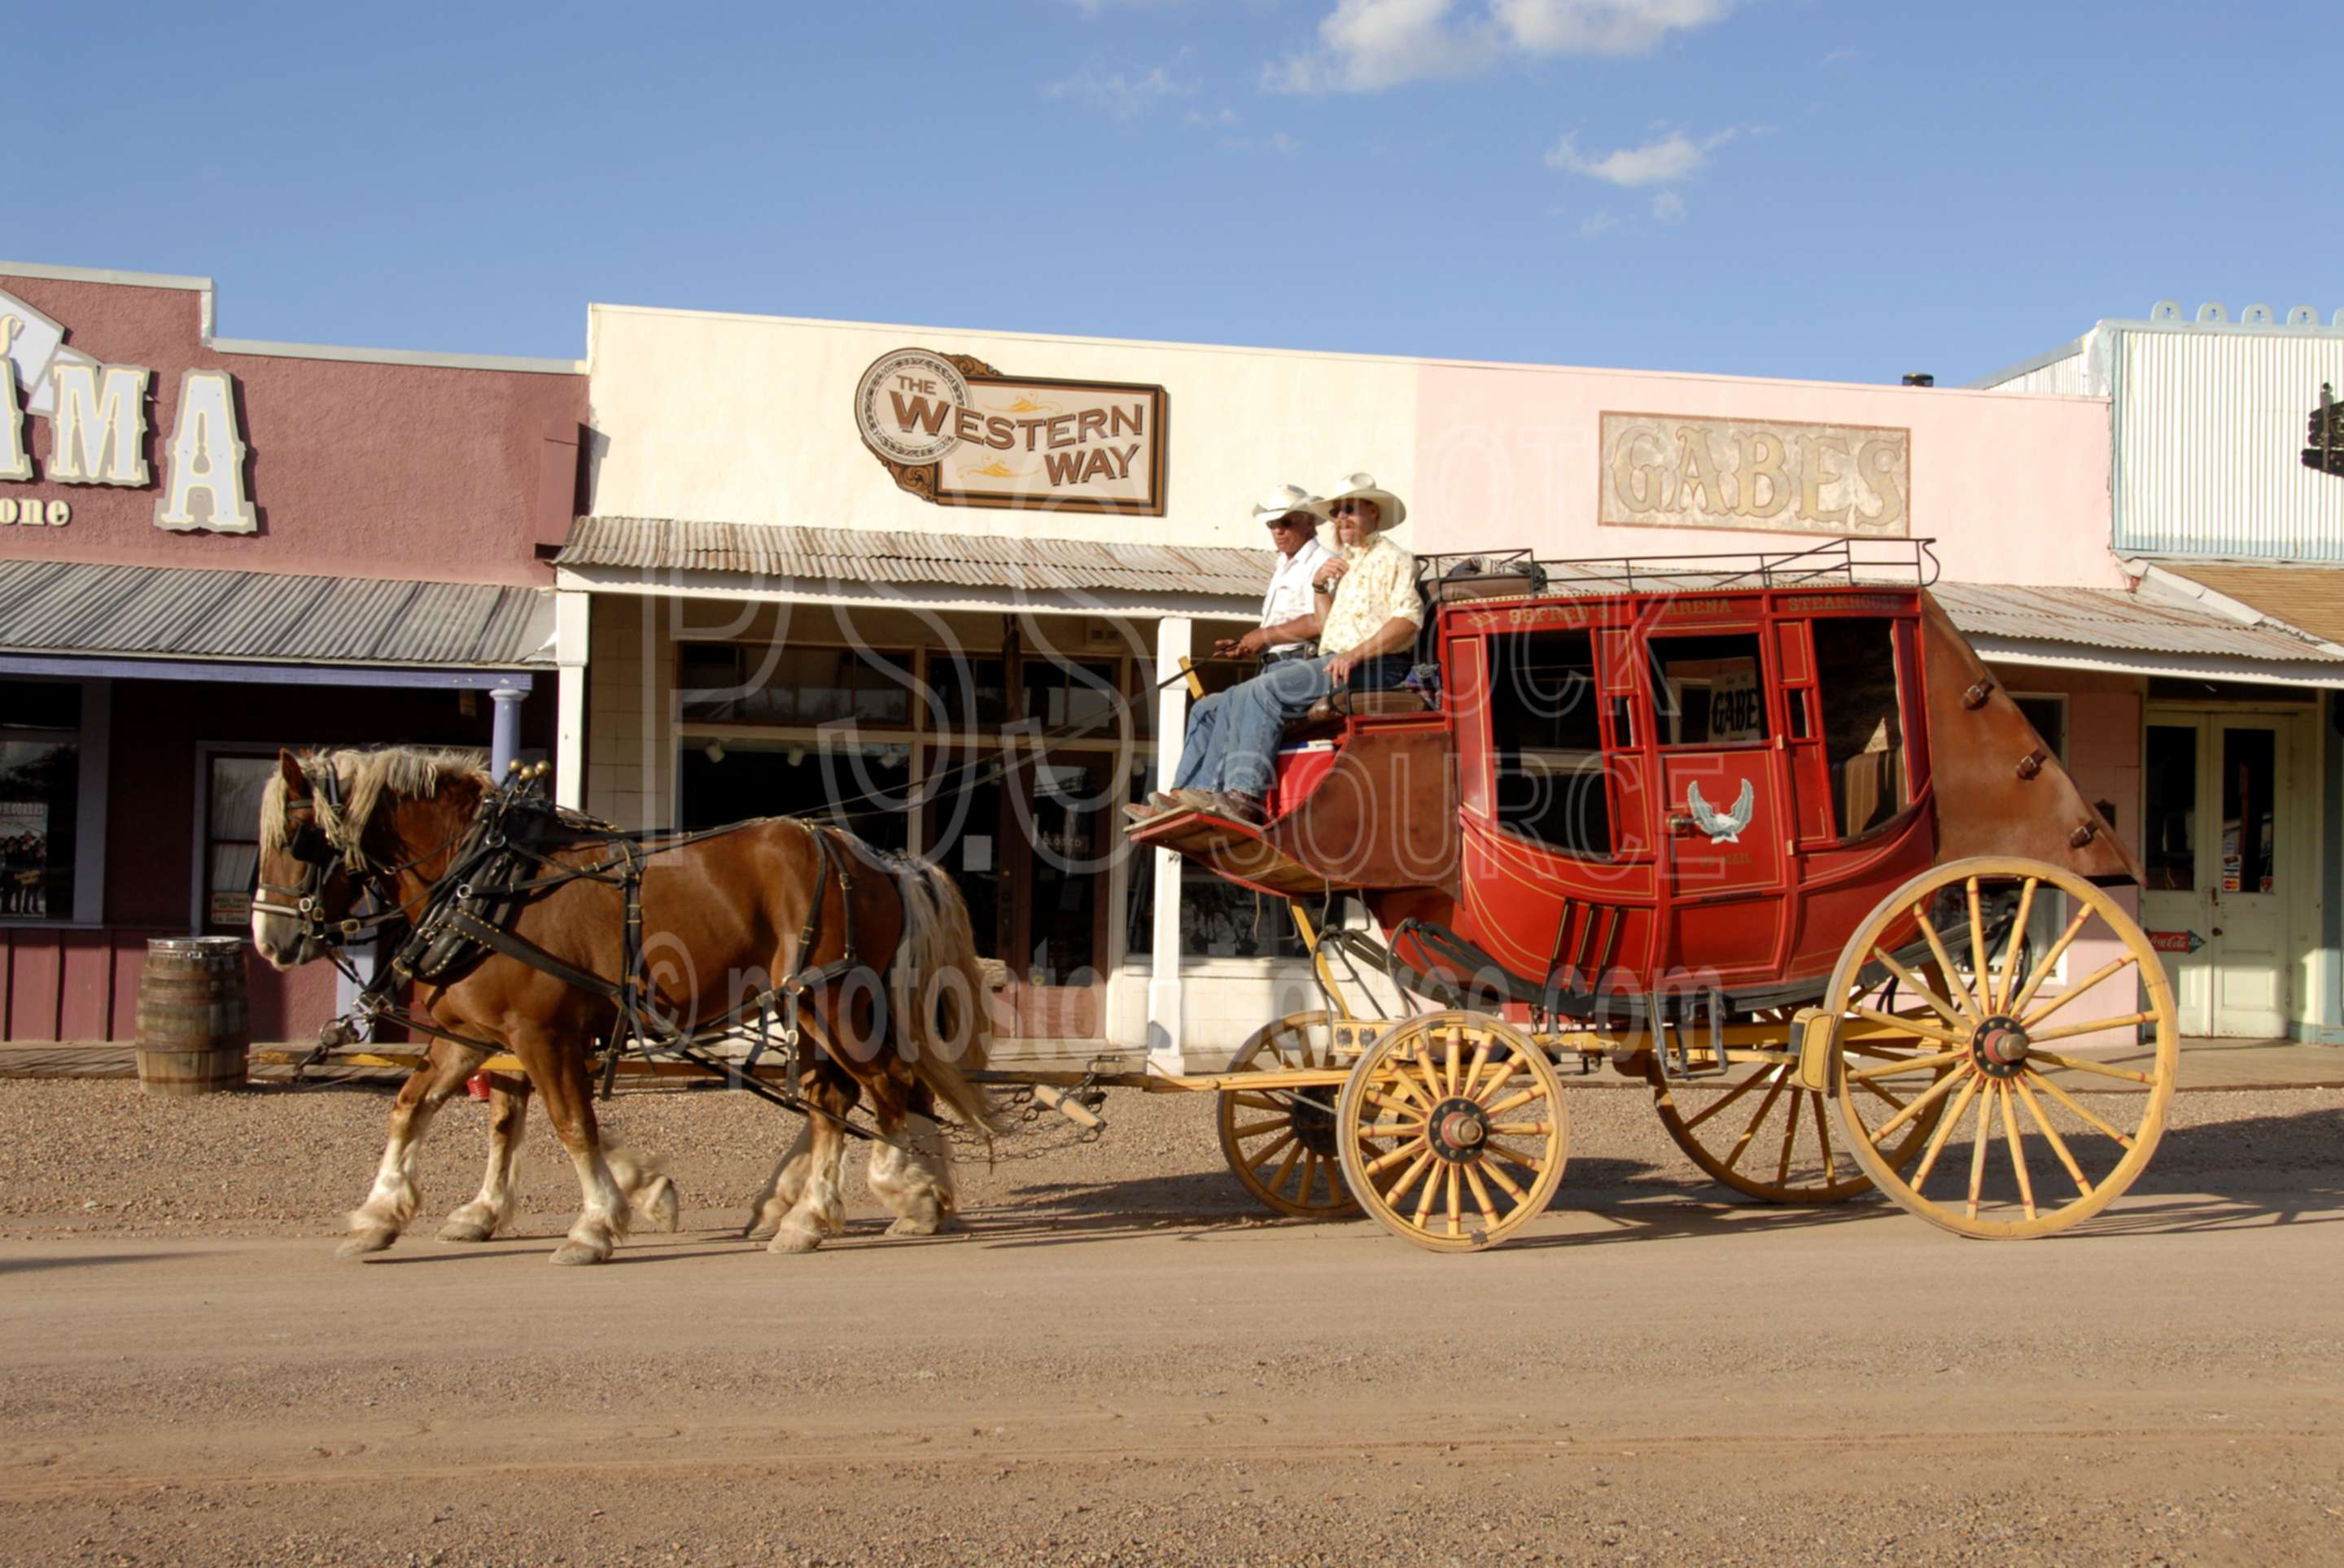 Historic Stagecoach,historical,old west,stage,stagecoach,cowboys,people,men,horses,wagons